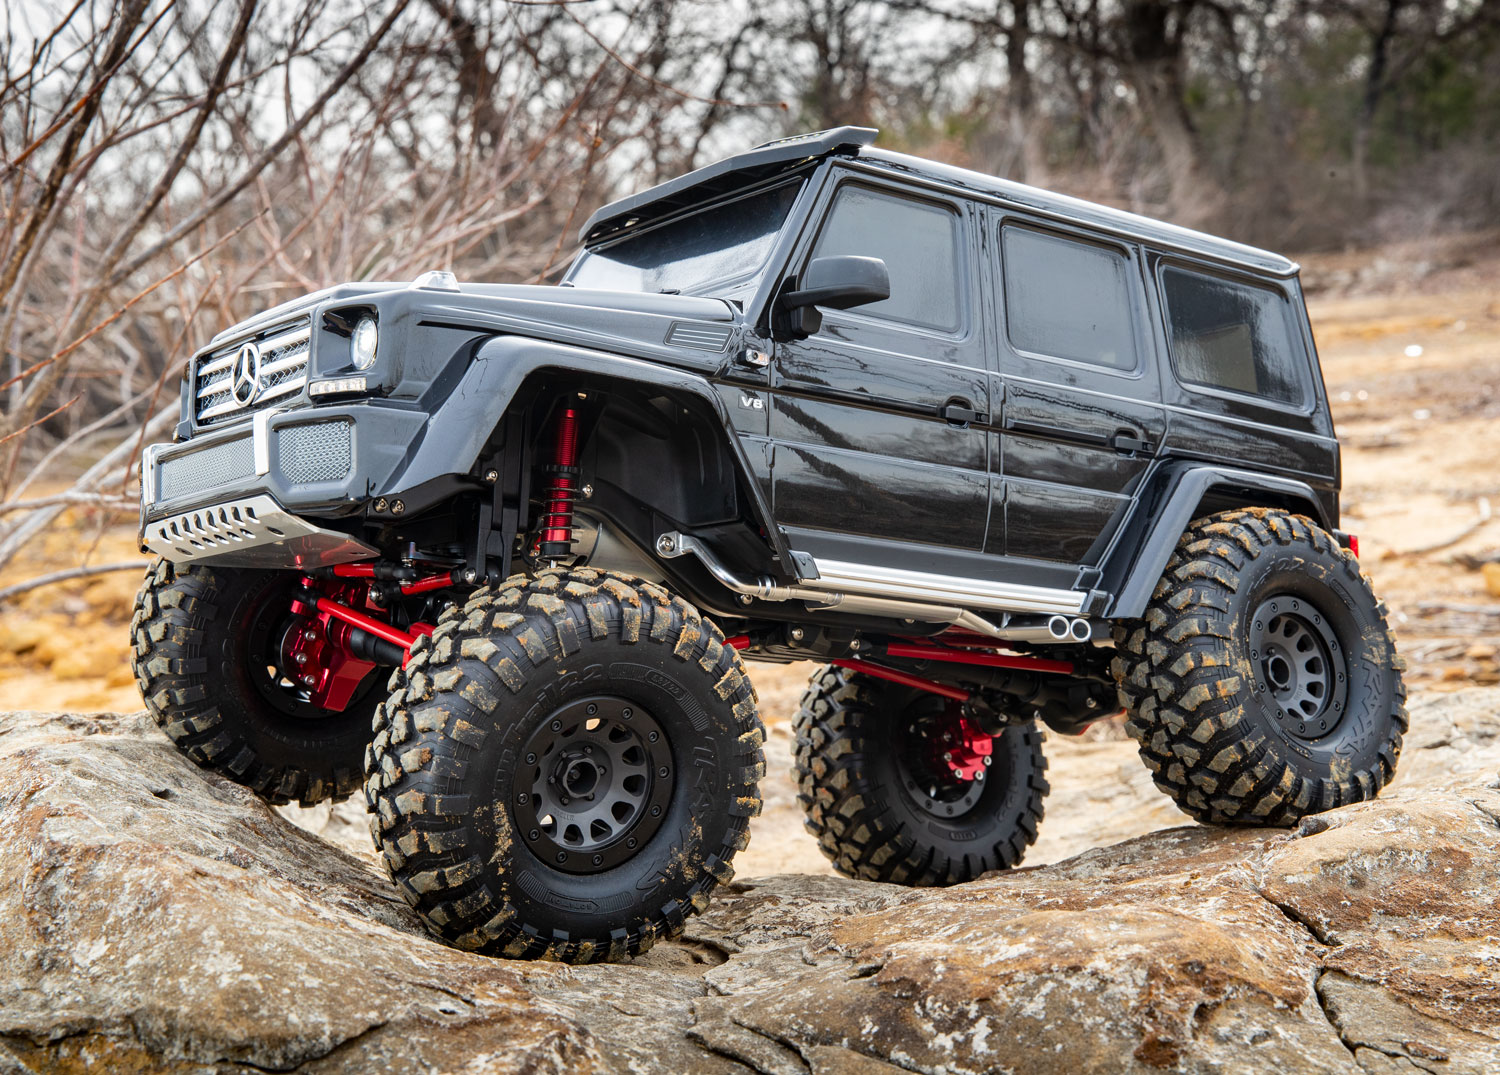 Black G 500 on the rocks